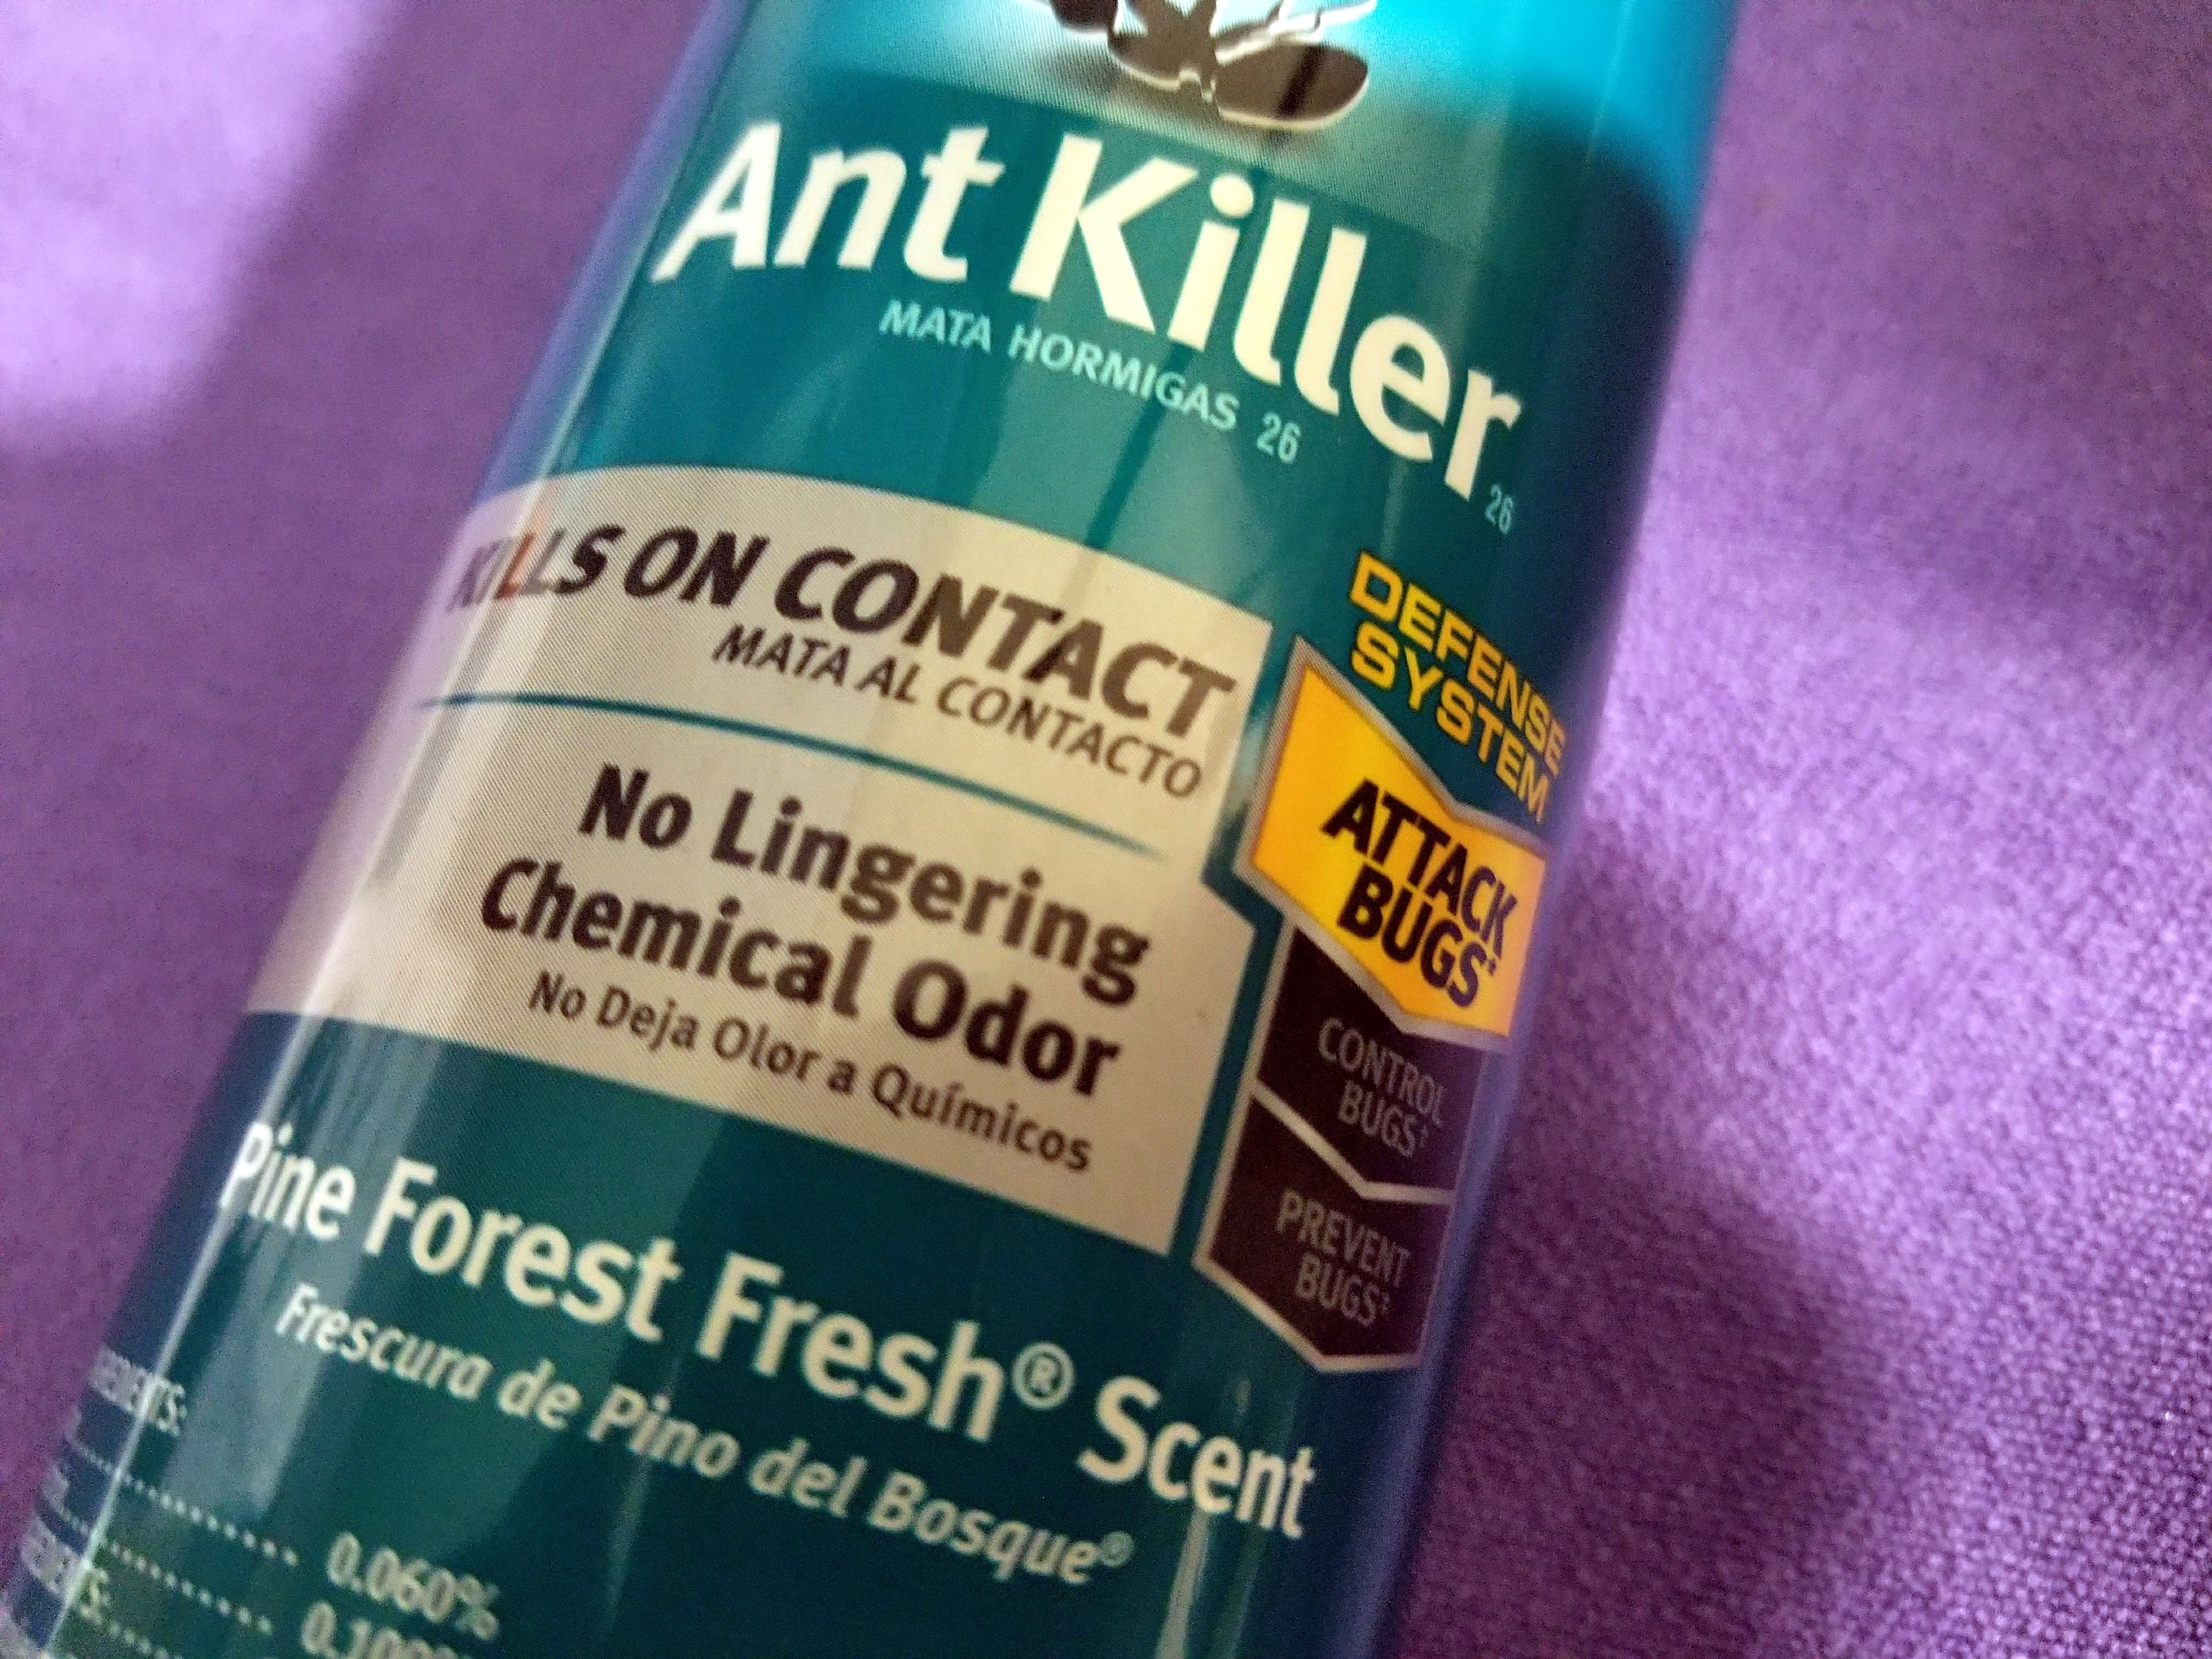 Raid Ant Killer Pine Forest Fresh Scent uploaded by Charnita F.